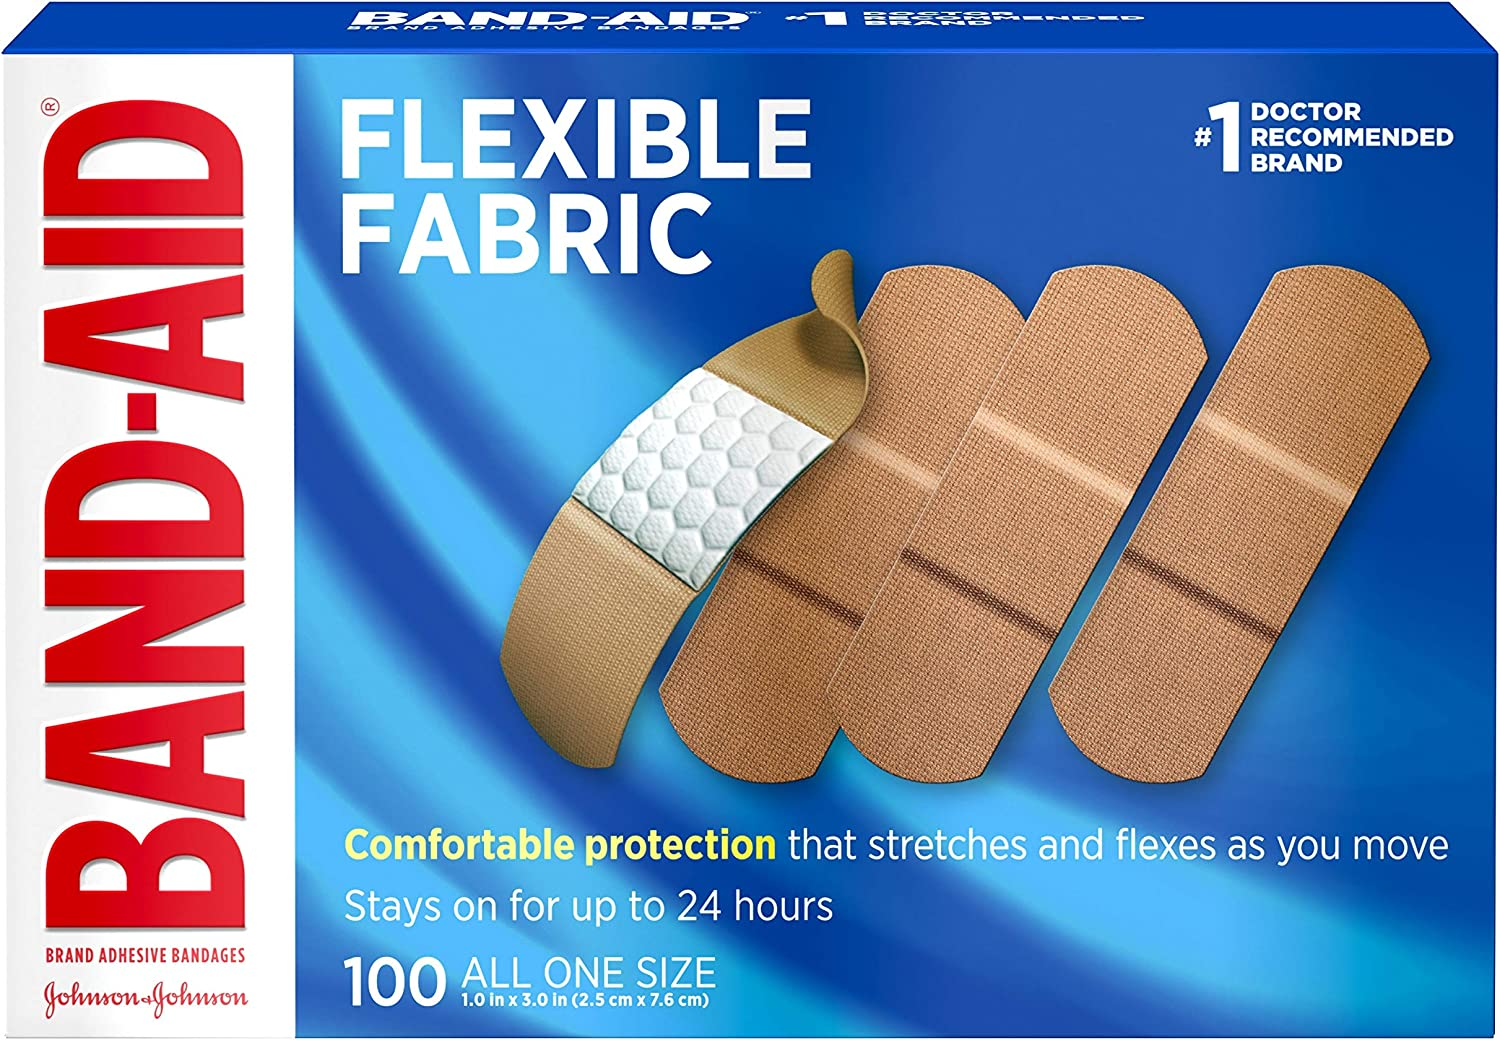 B00006IDL6 Johnson & Johnson Band-Aid Brand Flexible Fabric Adhesive Bandages for Wound Care and First Aid, All One Size, 100 Count, Tan 91nHT-VLyPL